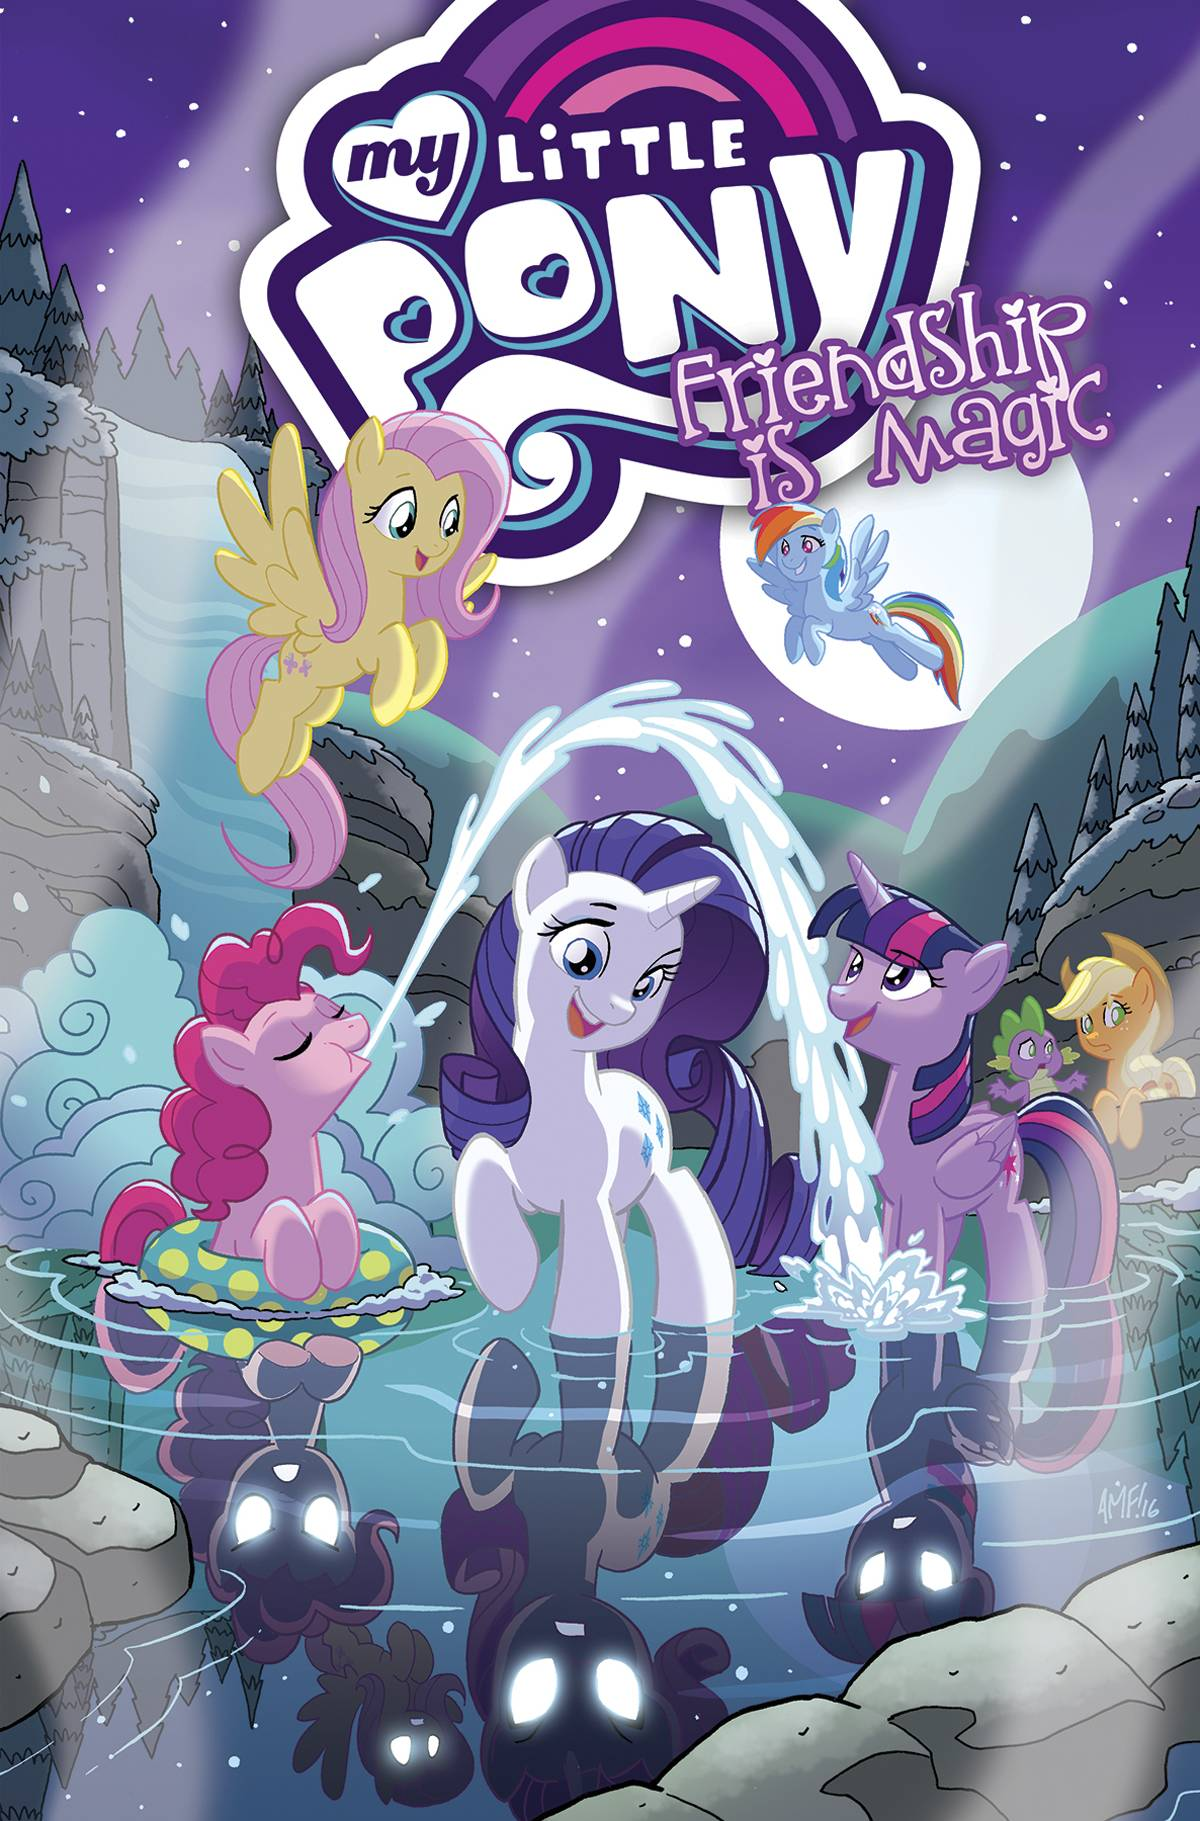 MY LITTLE PONY: FRIENDSHIP IS MAGIC VOL 11